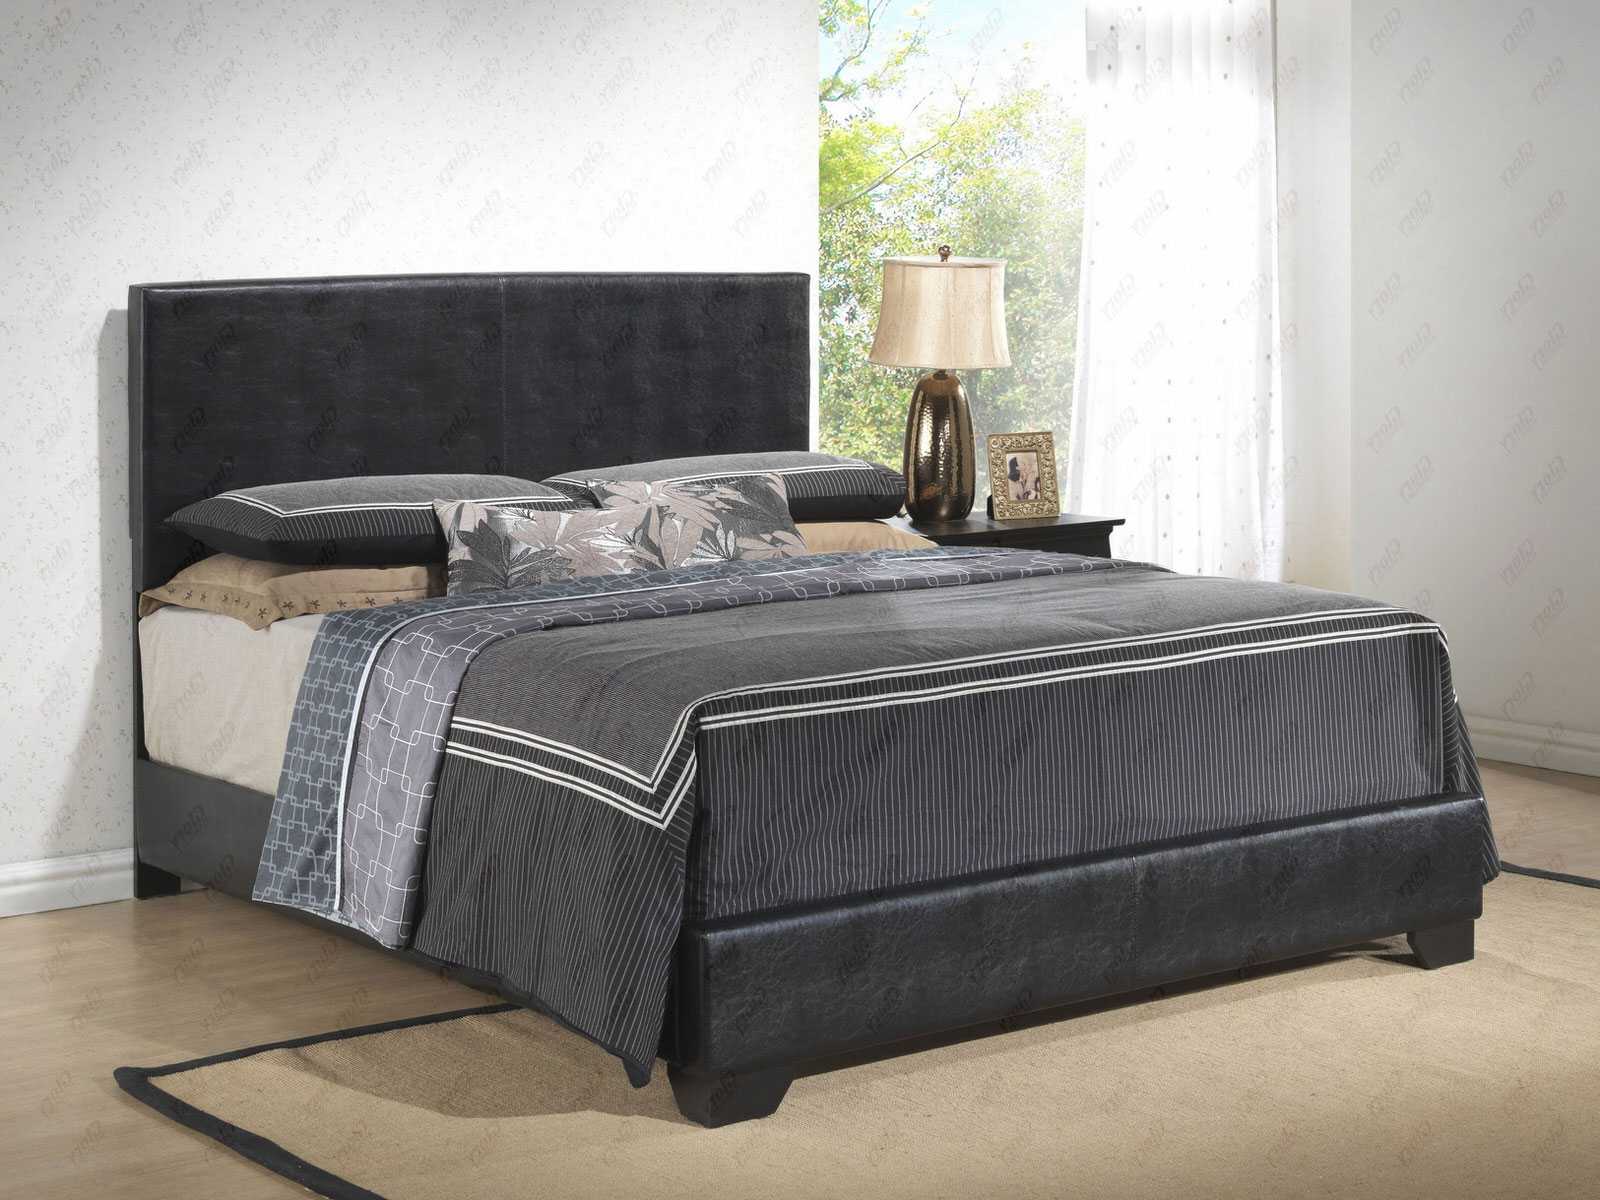 Awesome Nyc Deal Full Upholstered Bed With Mattress Set Free Delivery In Nyc Download Free Architecture Designs Scobabritishbridgeorg